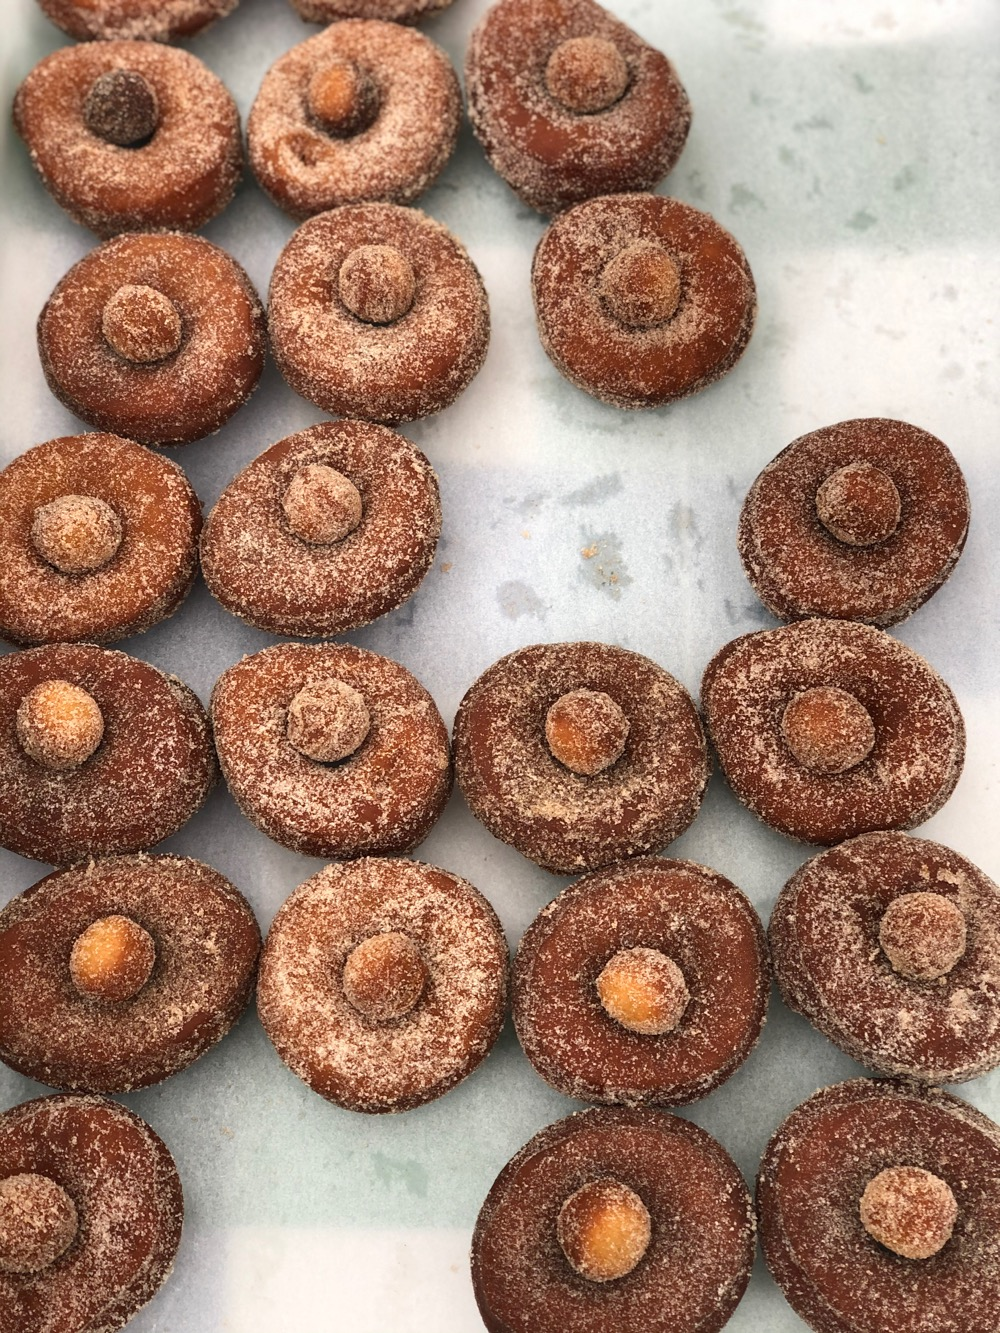 Cider doughnuts at the cider pressing